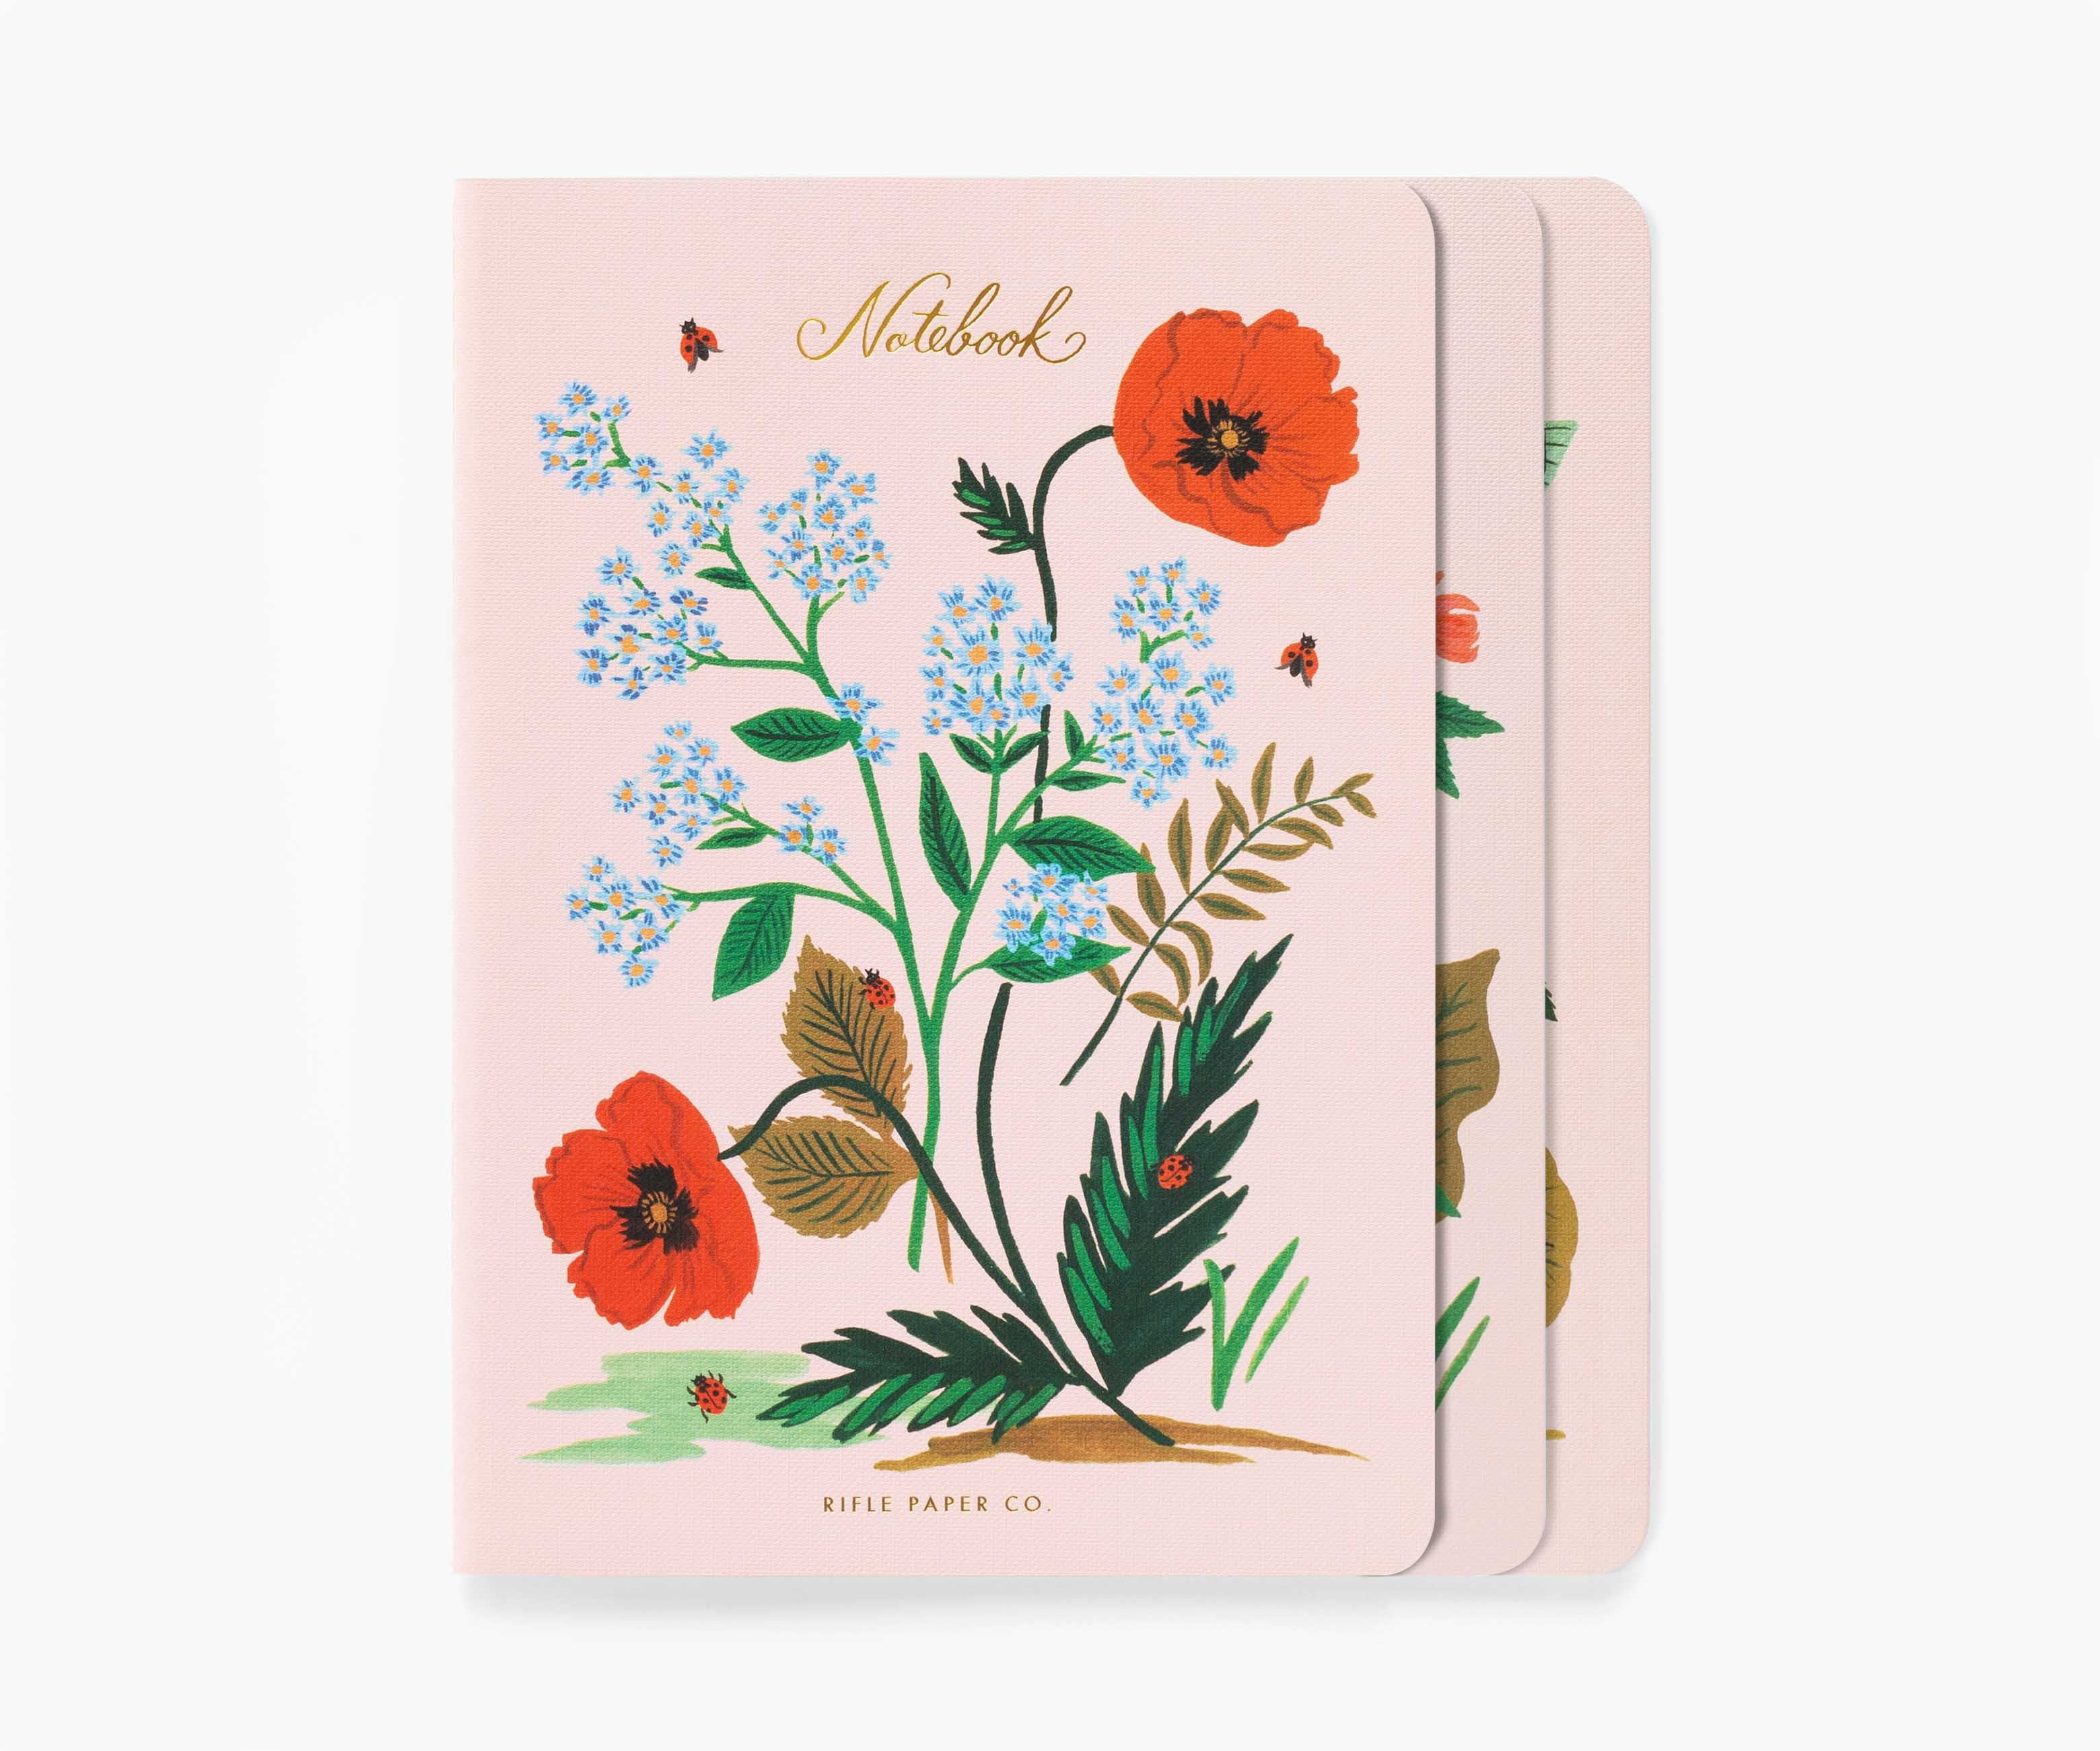 Image For Rifle Paper Co - Stiched Notebook Set - Botanical